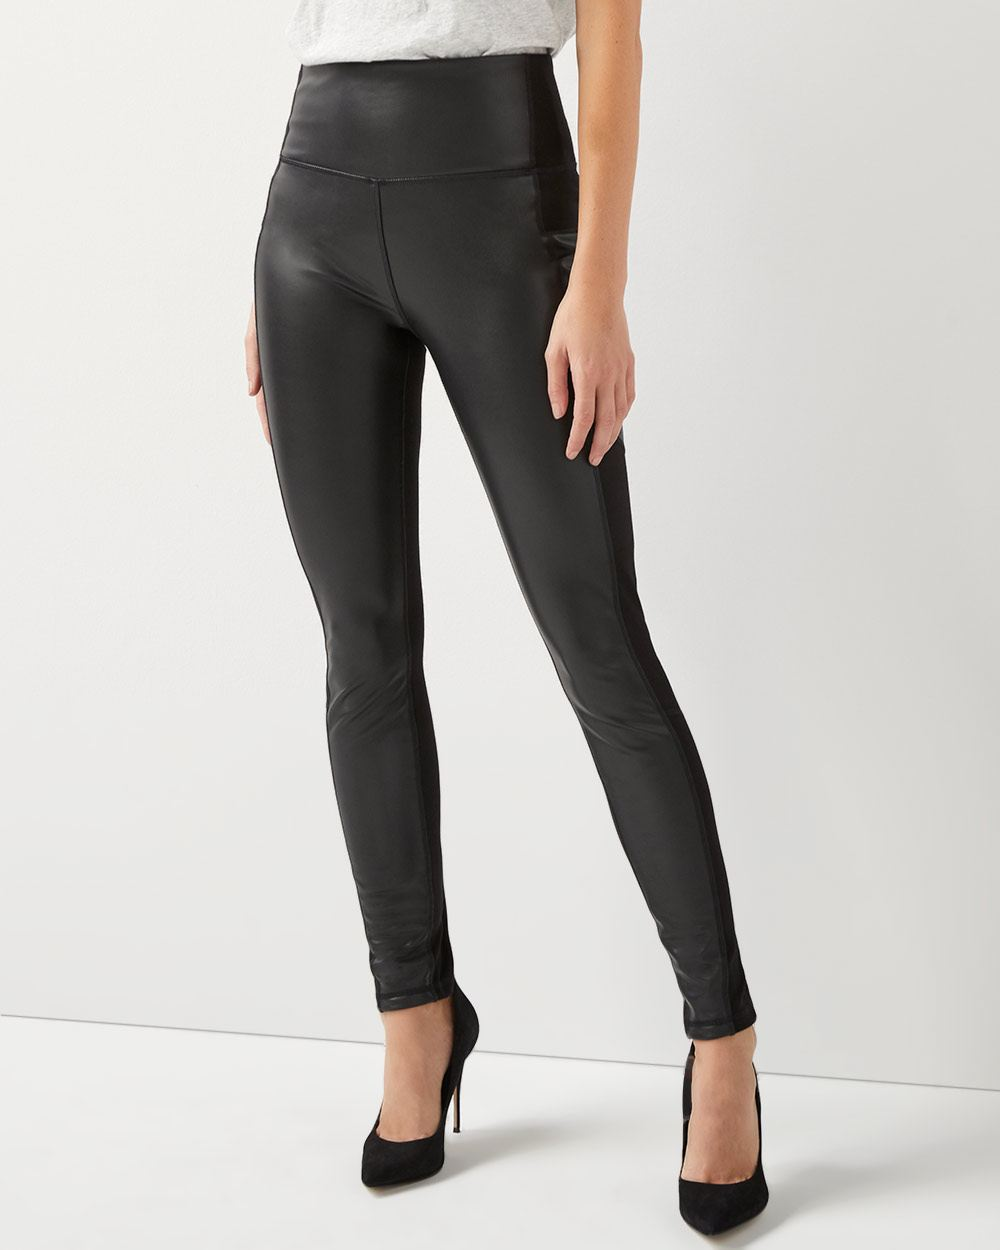 Slimming high-rise legging with faux leather